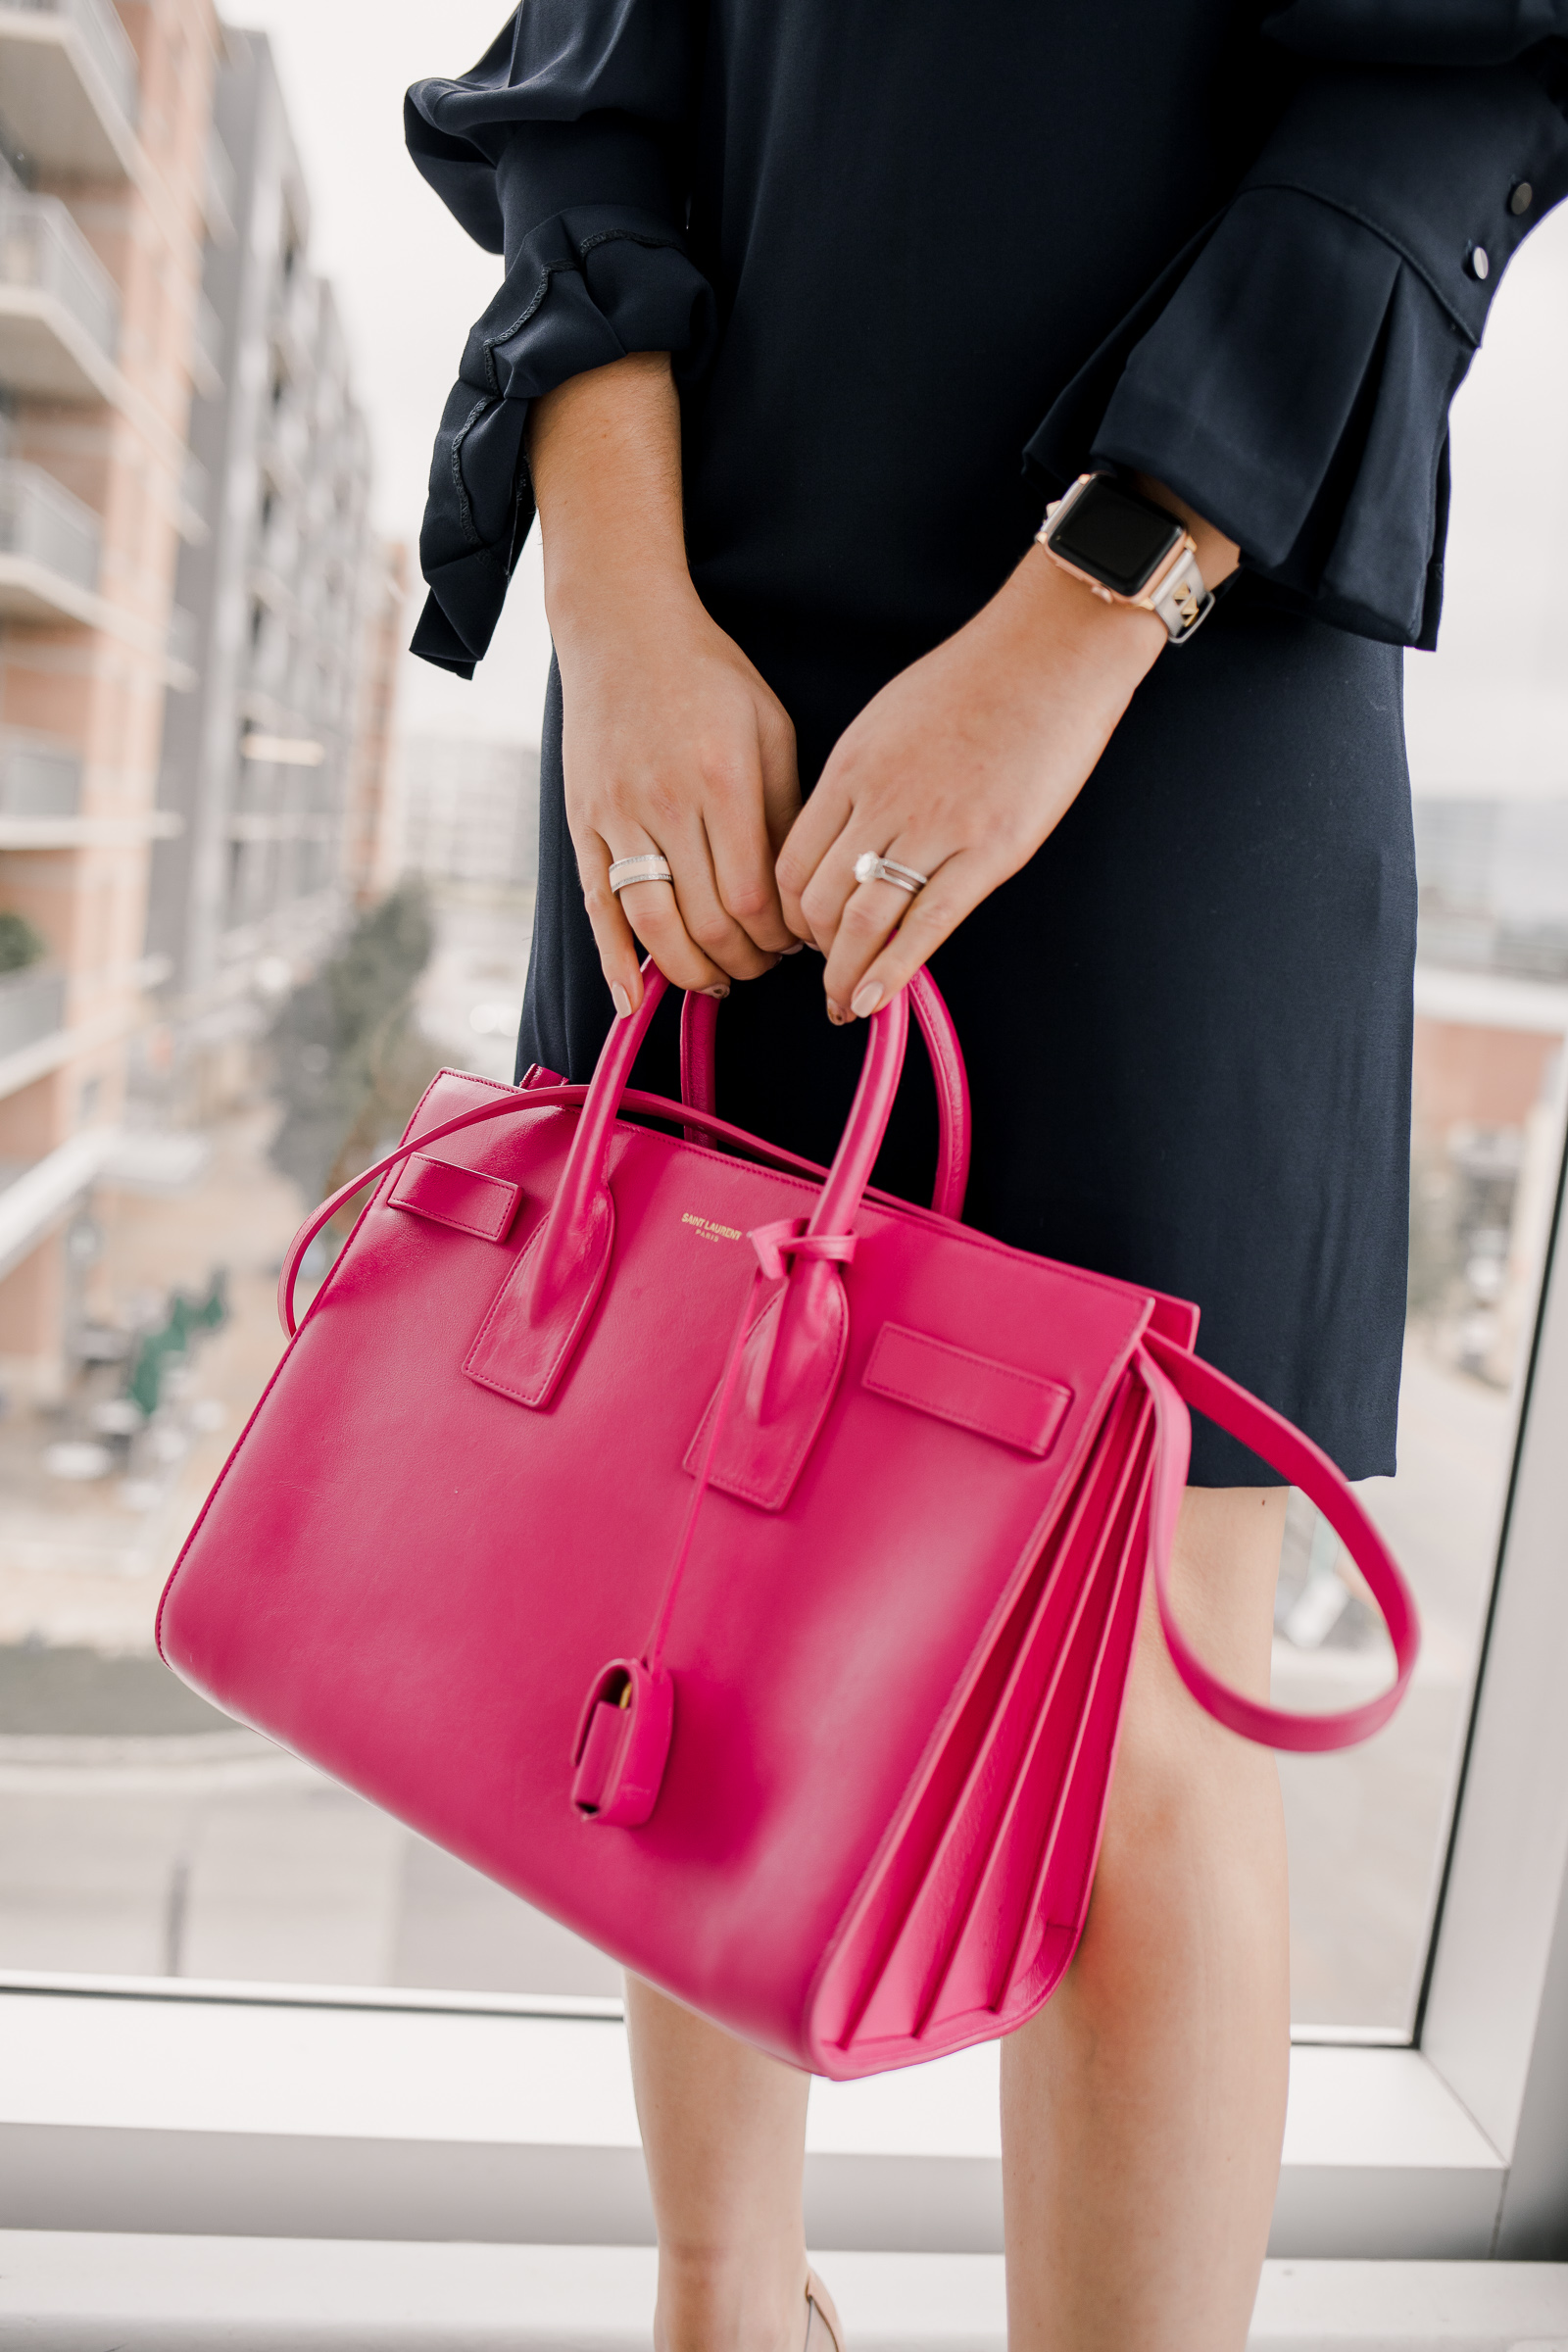 Houston fashion blogger Uptown with Elly Brown wears a pink YSL Sac De Jour bag